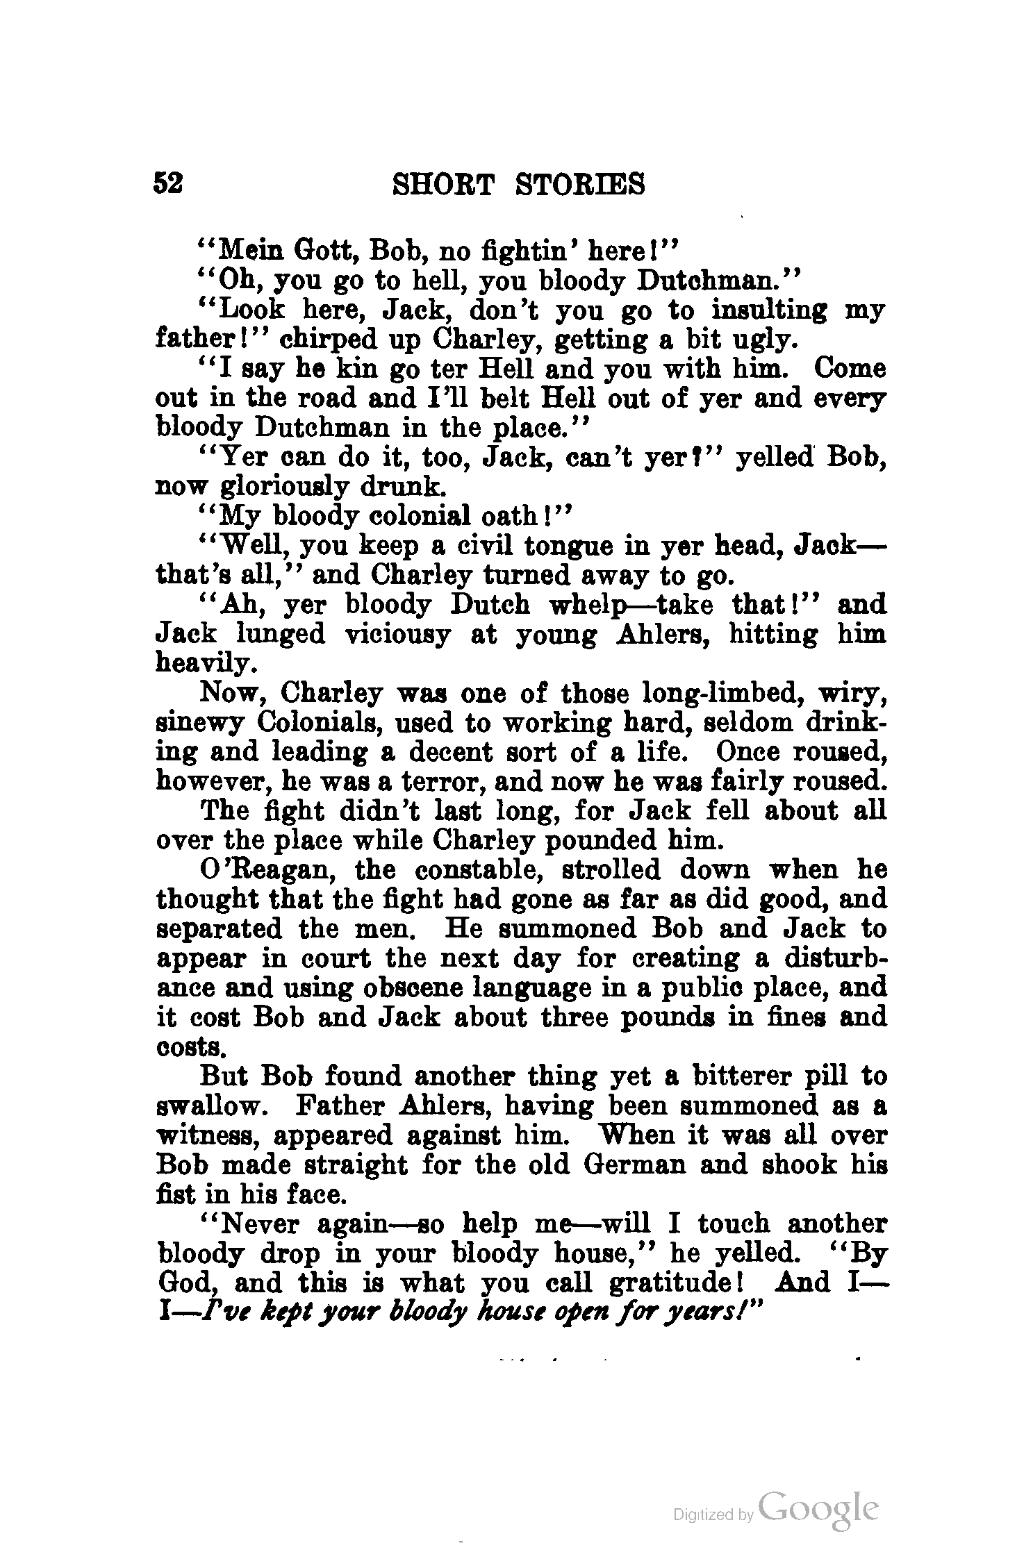 Page Short Stories 1912 Djvu 59 Wikisource The Free Online